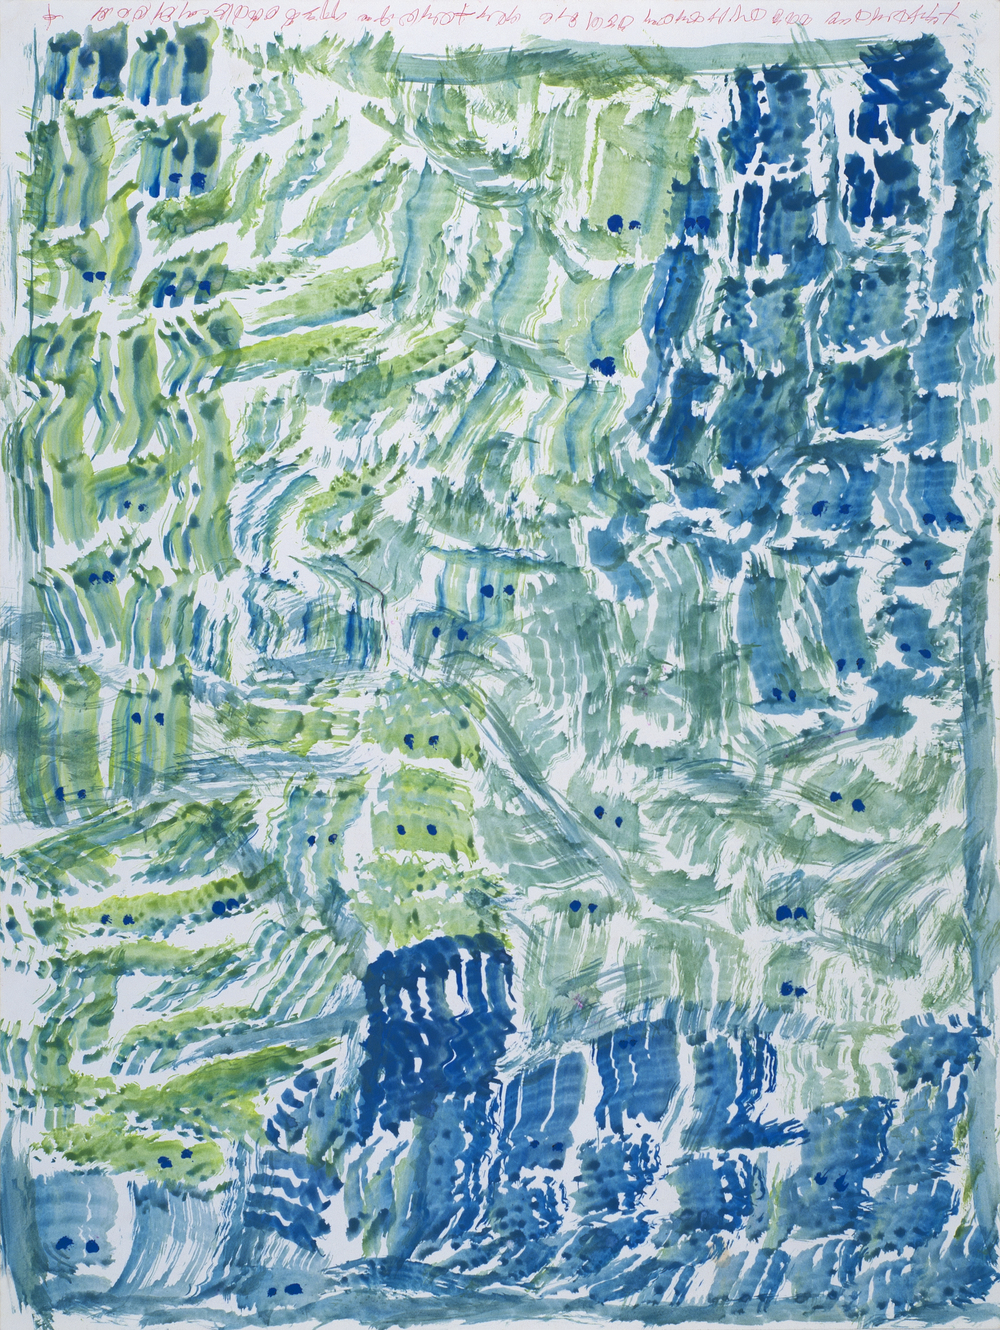 J.B. Murray    Untitled  , c. 1978-1988 Tempera and ink on paper 24 x 18 inches 61 x 45.7 cm JBM 439